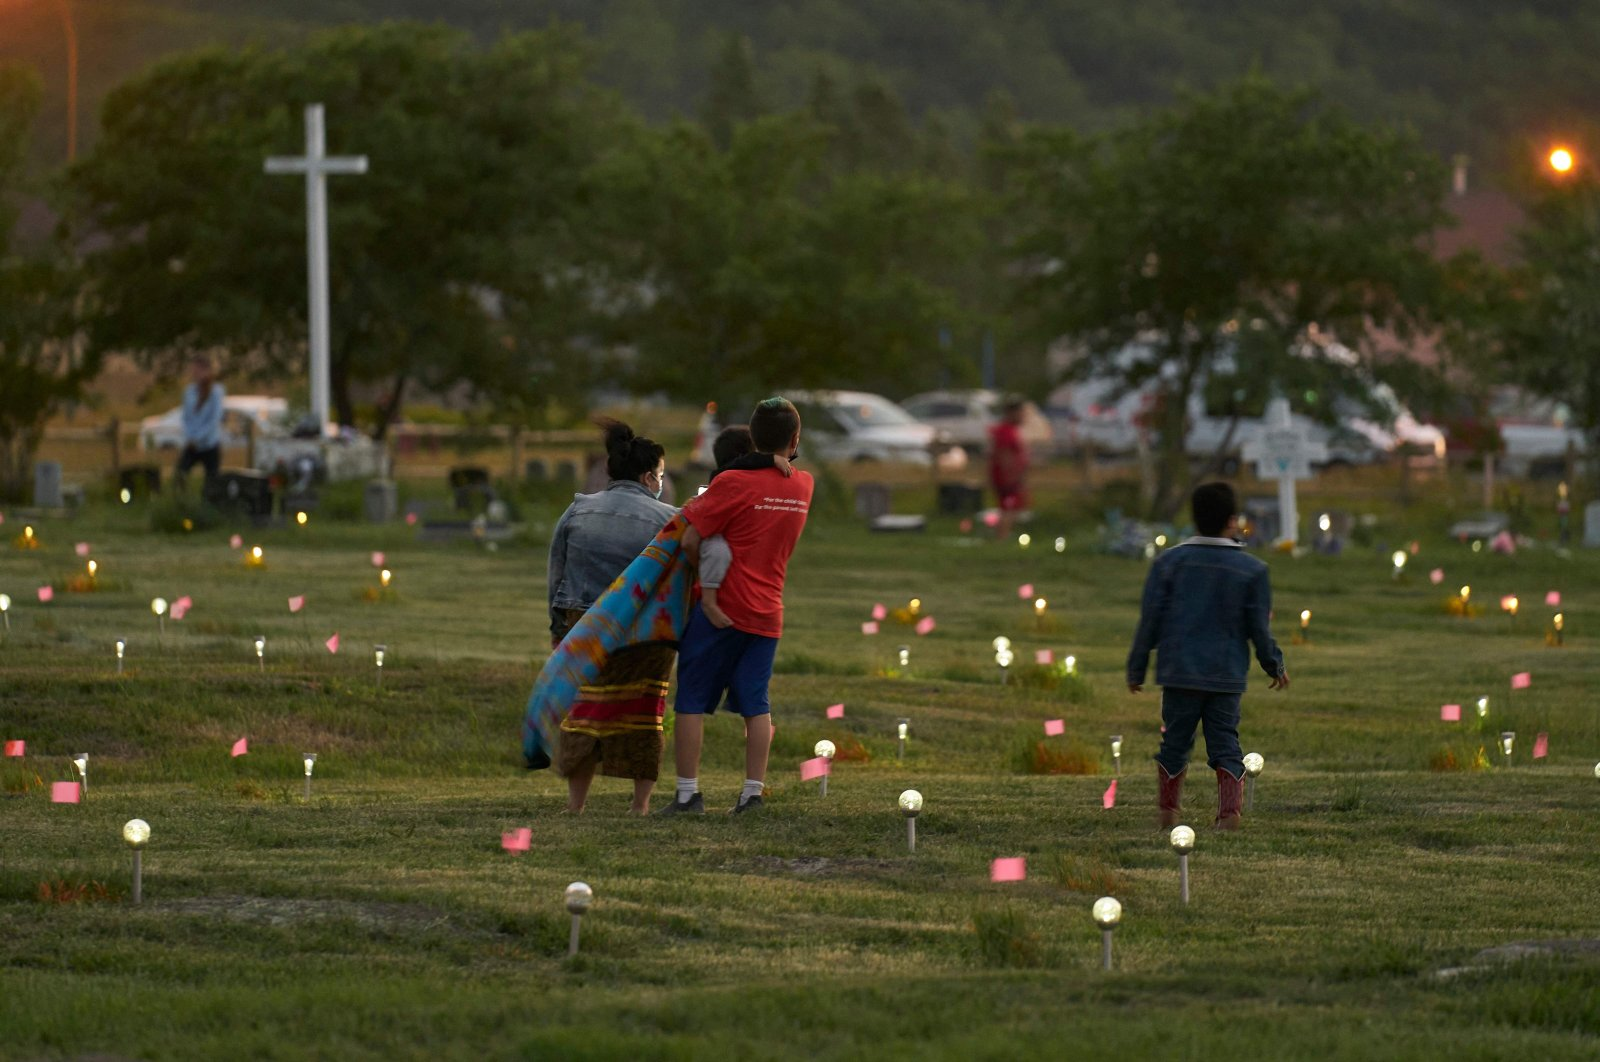 A family walks through a field where flags and solar lights now mark the site where human remains were discovered in unmarked graves at the former Marieval Indian Residential School site on Cowessess First Nation, Saskatchewan, Canada, June 26, 2021. (AFP Photo)